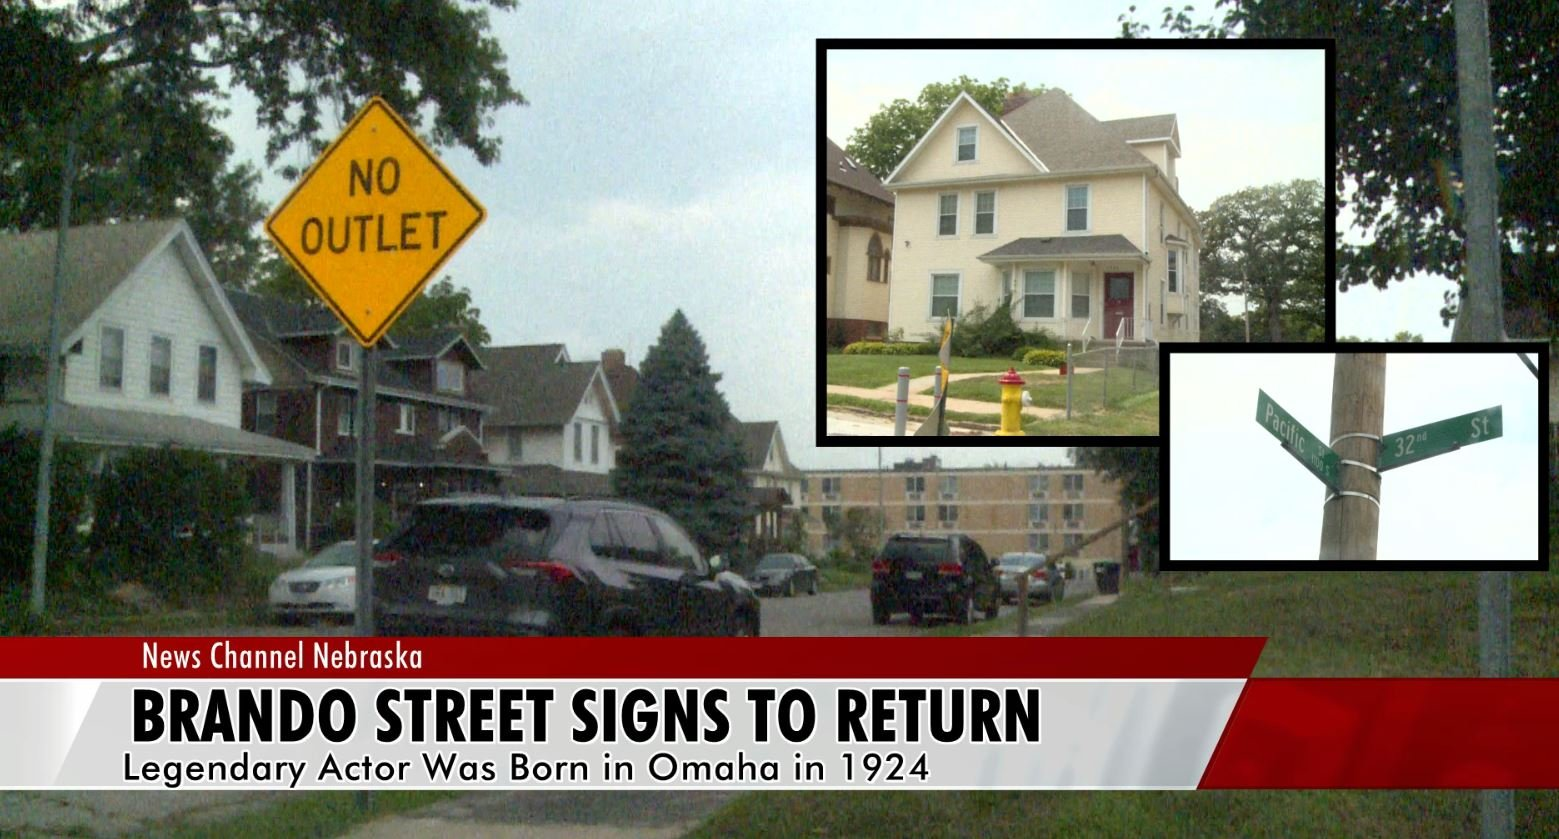 Marlon Brando street signs: An offer Omaha could not refuse